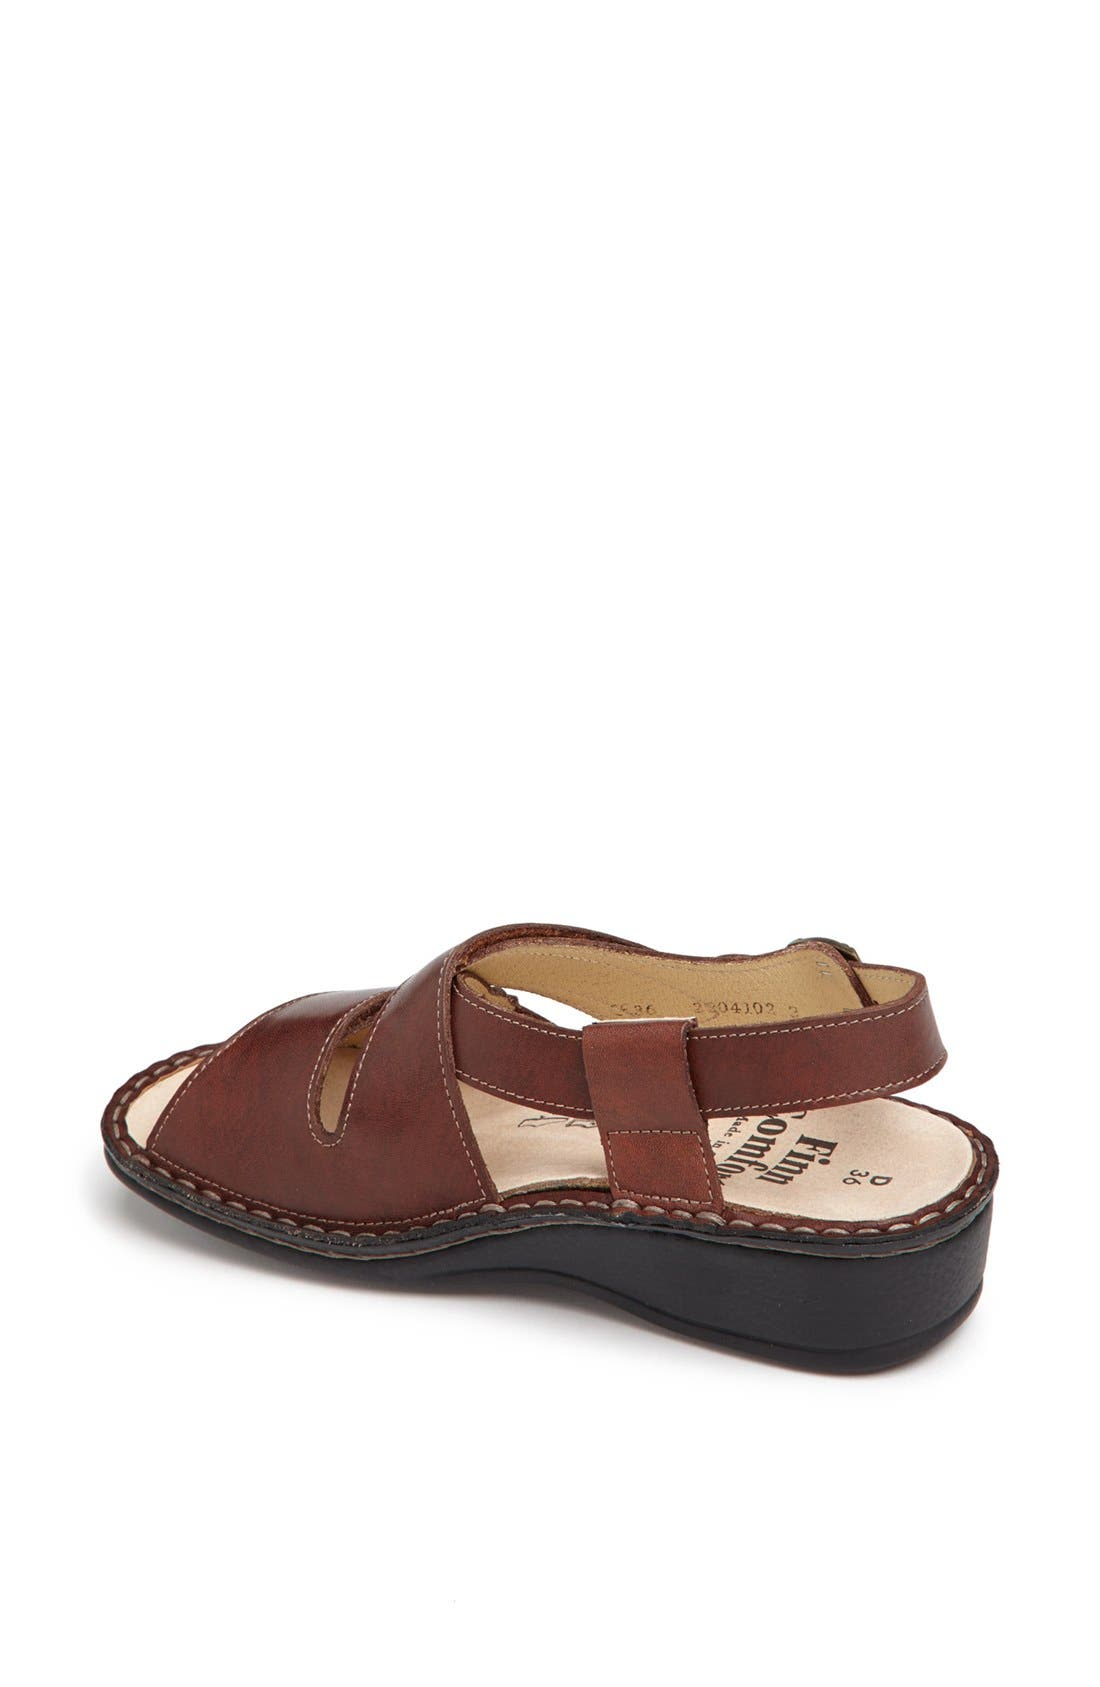 'Jersey' Sandal,                             Alternate thumbnail 2, color,                             Brandy Country